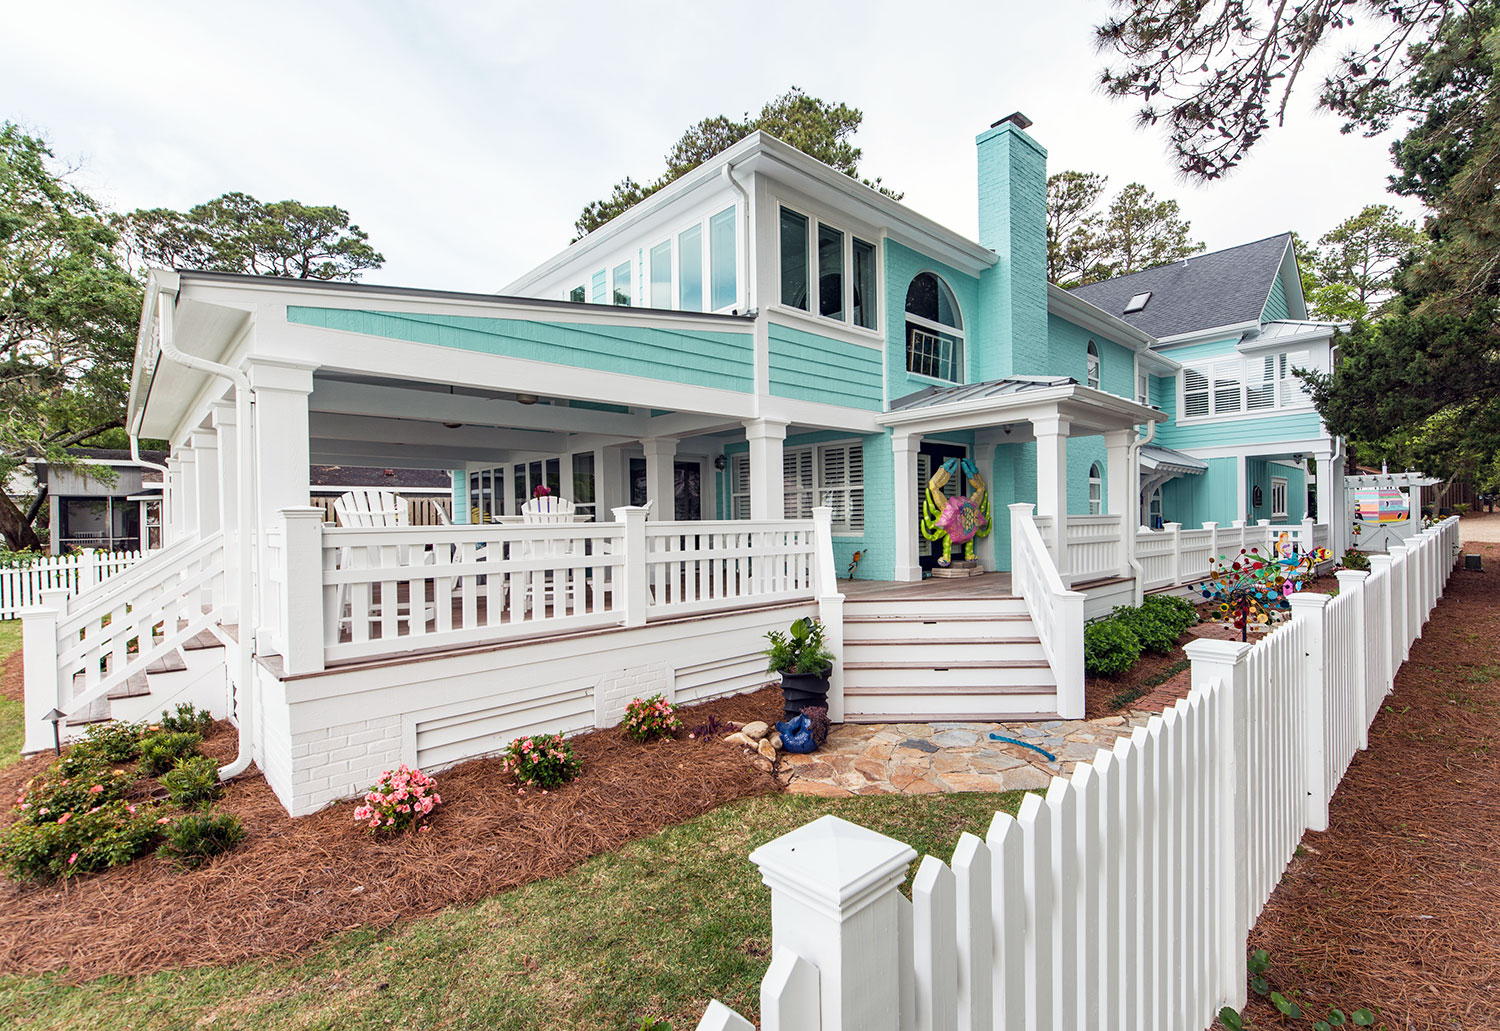 waterway-rear-full-porch-addition-fun